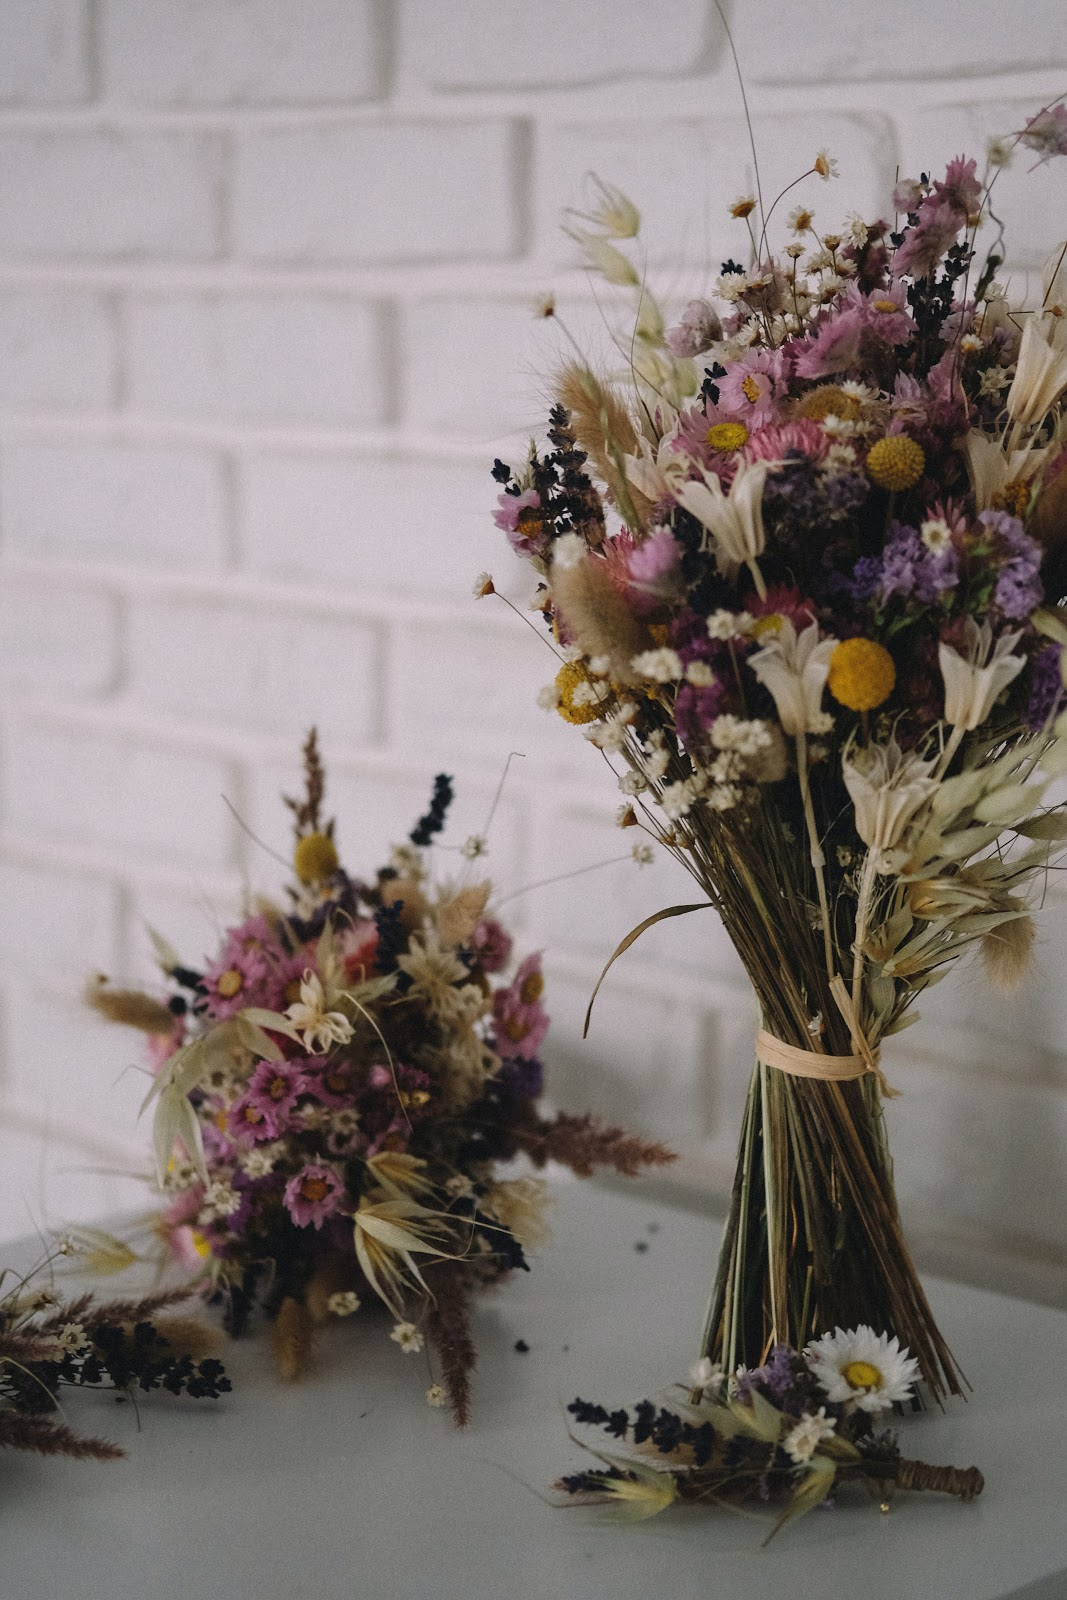 Are dried flowers bad feng shui?